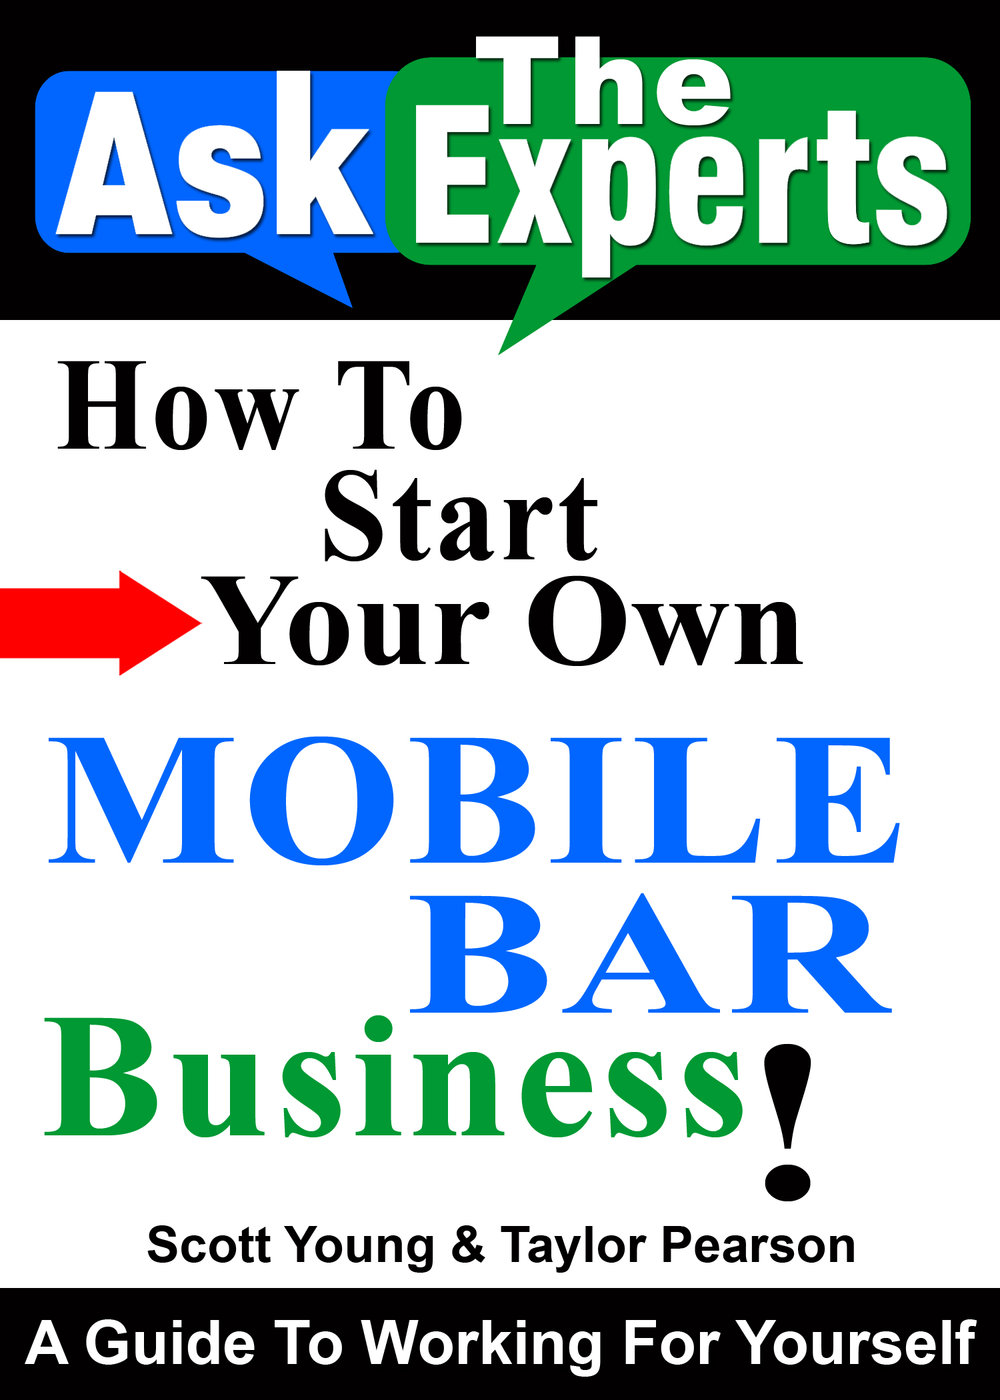 Get this and hundreds more at our Huge New Online Training Library. www.NightclubBarandRestaurantTraining.com